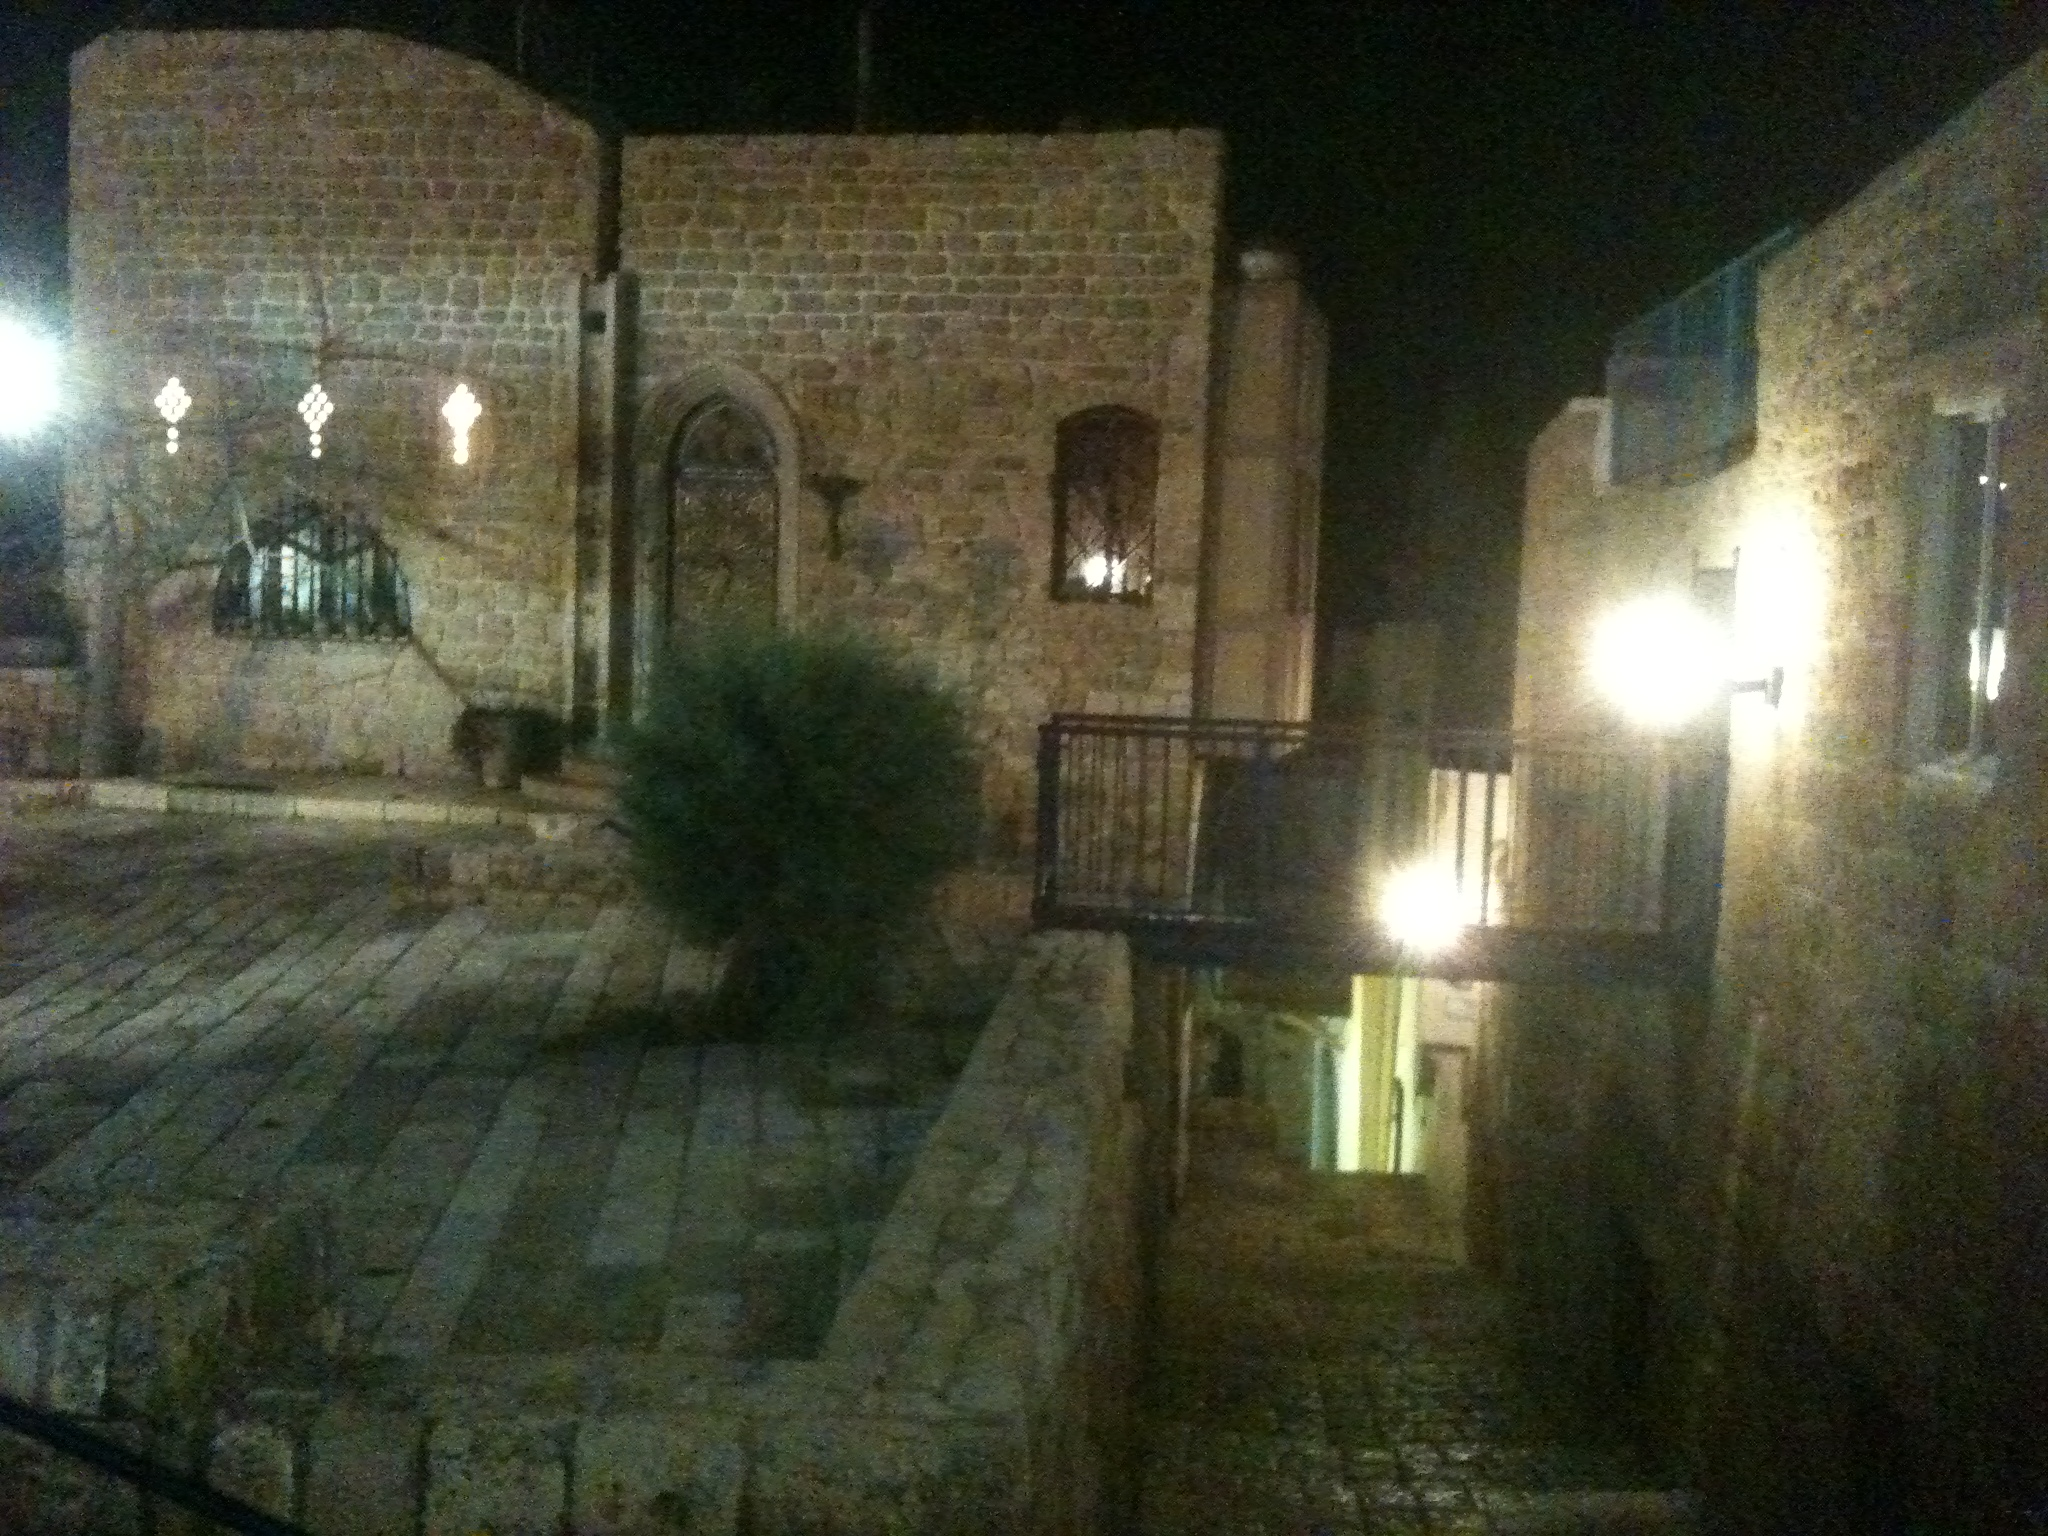 Old Jaffa, which dates back to a history of 4000 years and where alrady the Egyptian empire stationed a garrison.